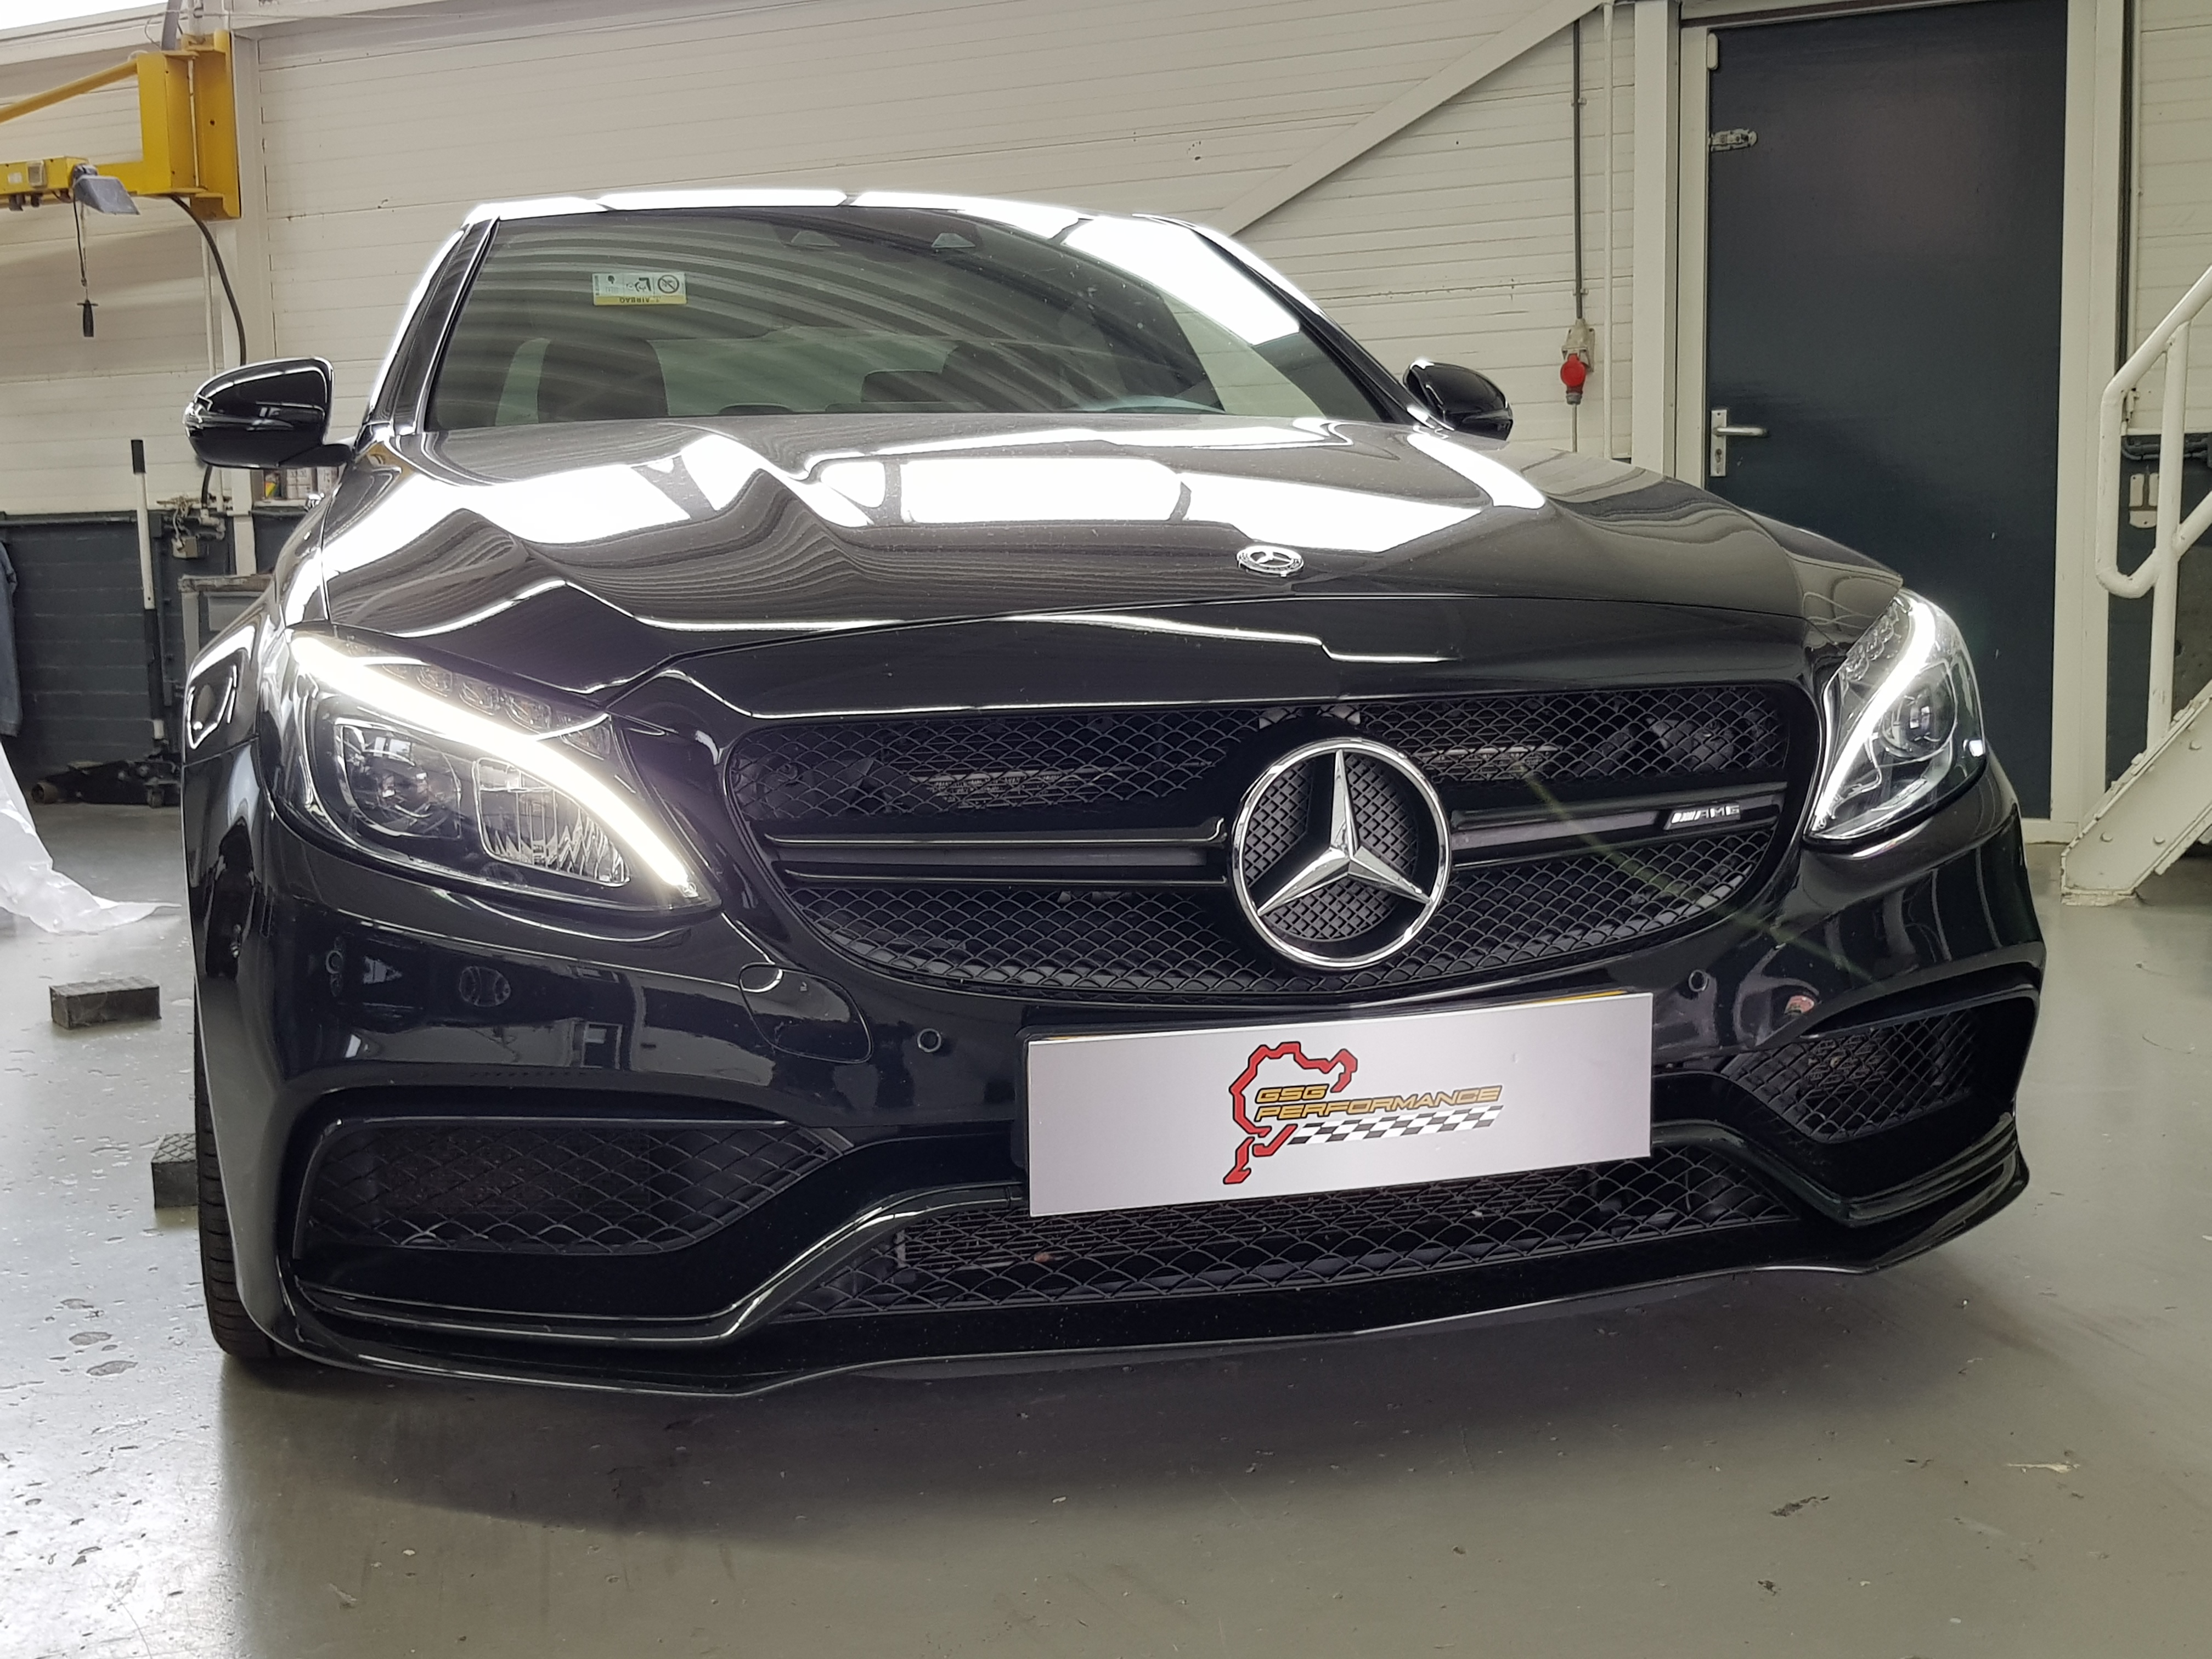 Mercedes C63 AMG Bi-Turbo V8 510HP (Stage 2)